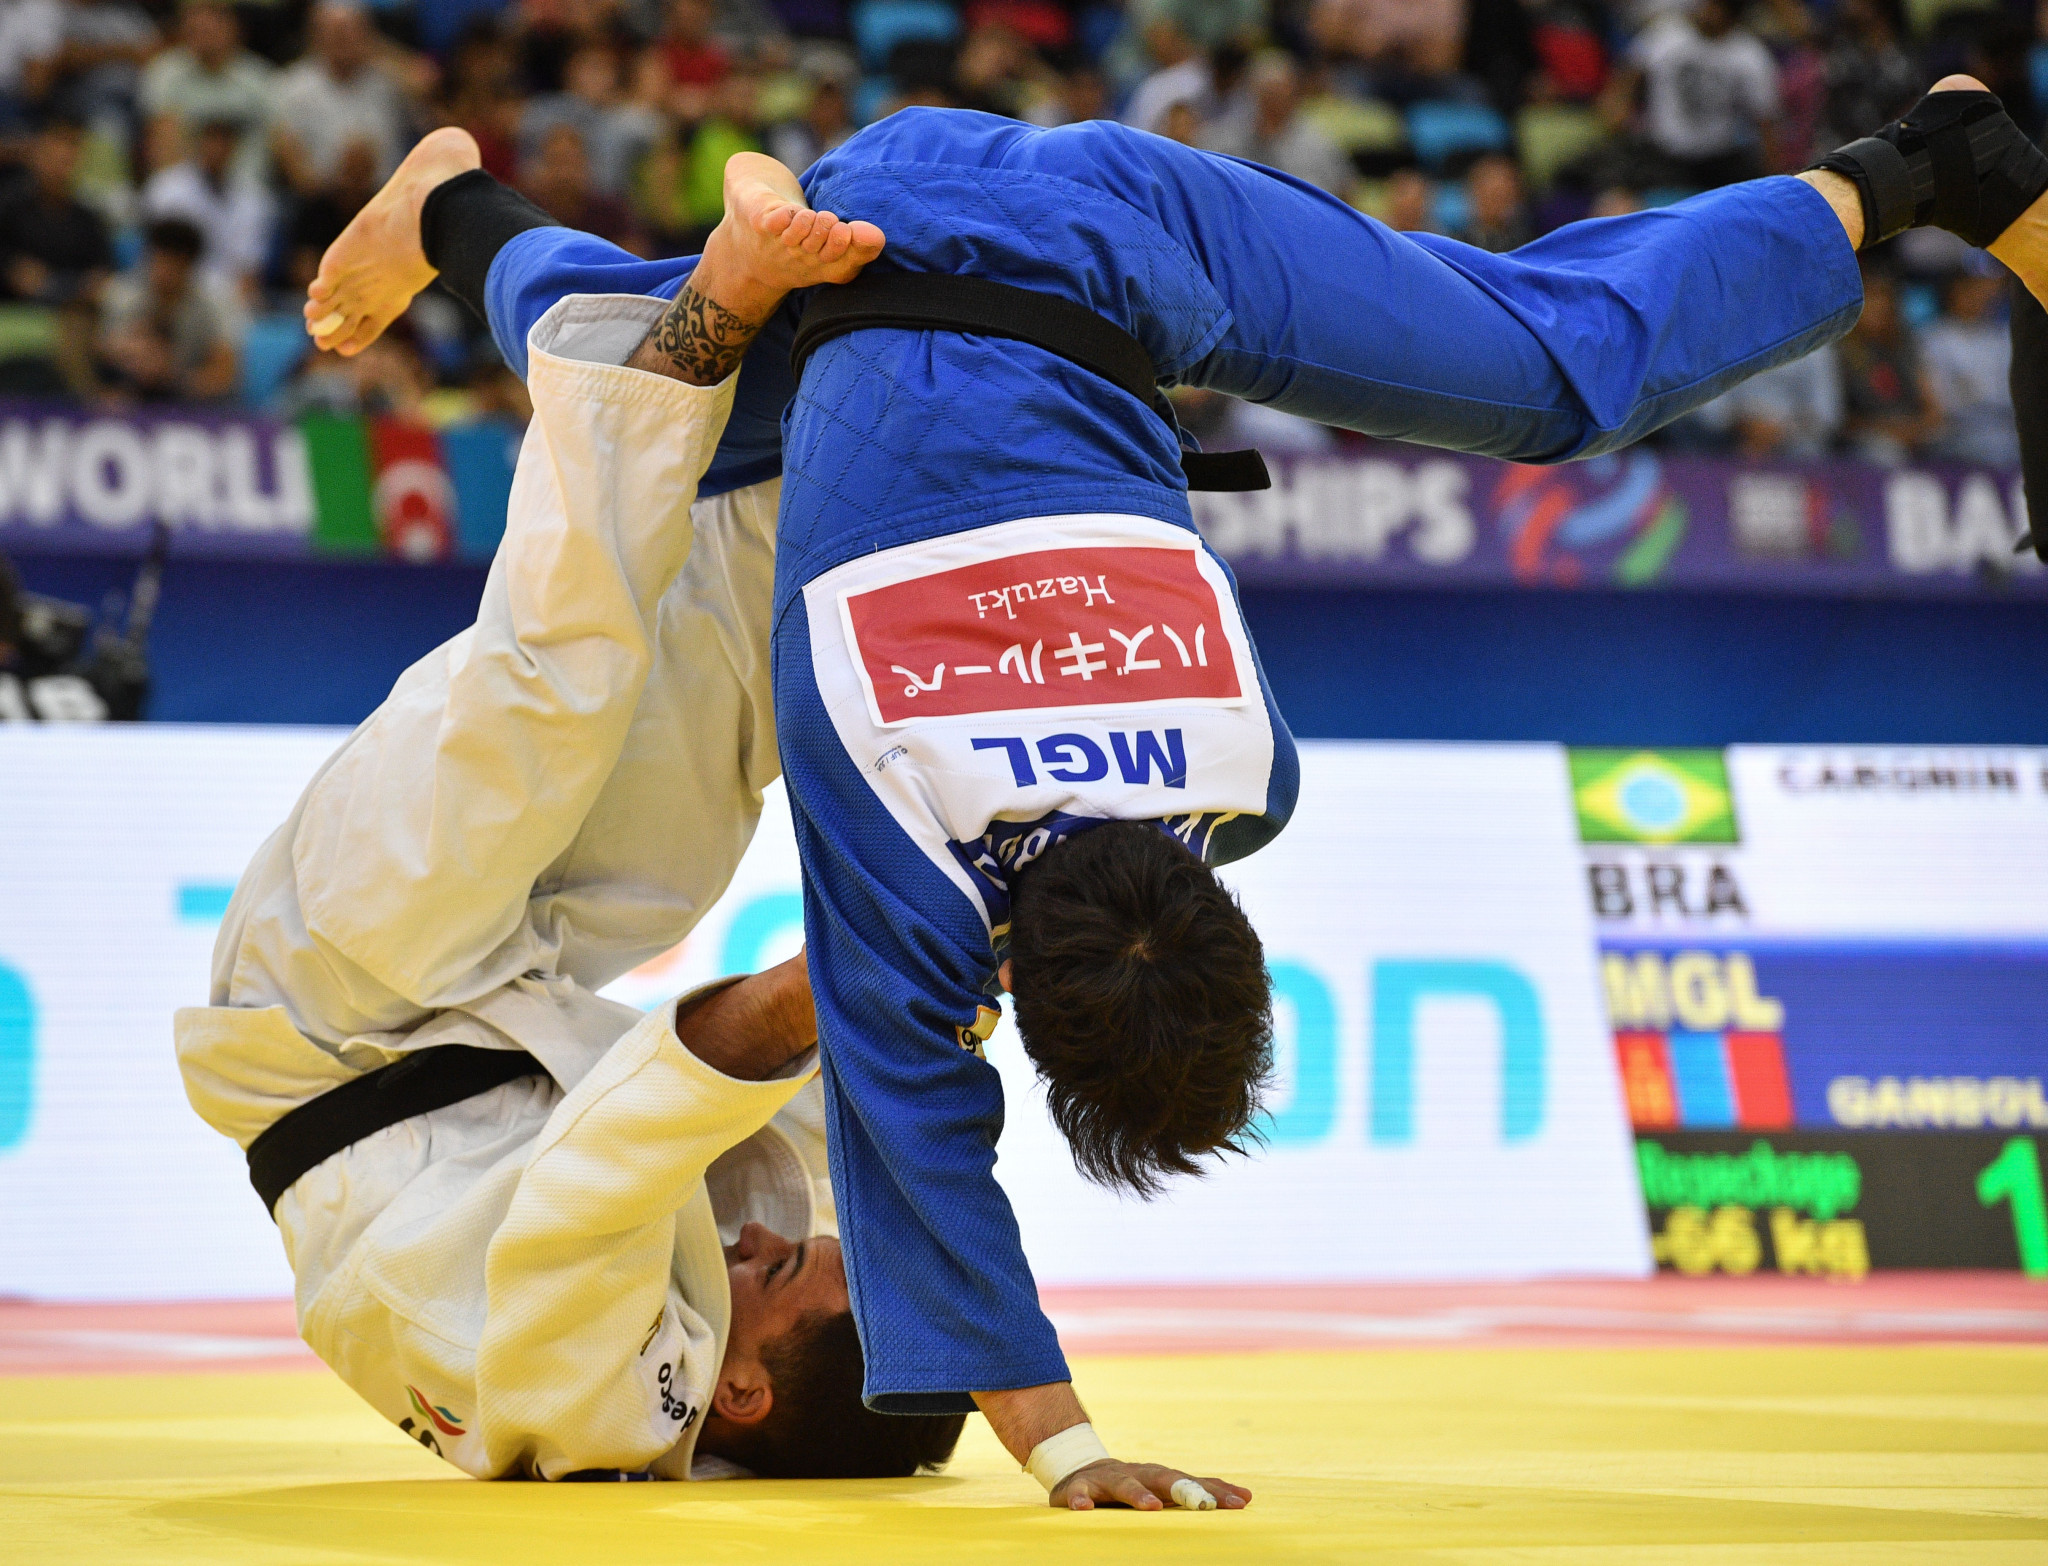 Brazil claim two gold medals on opening day of Pan American Senior Judo Championships